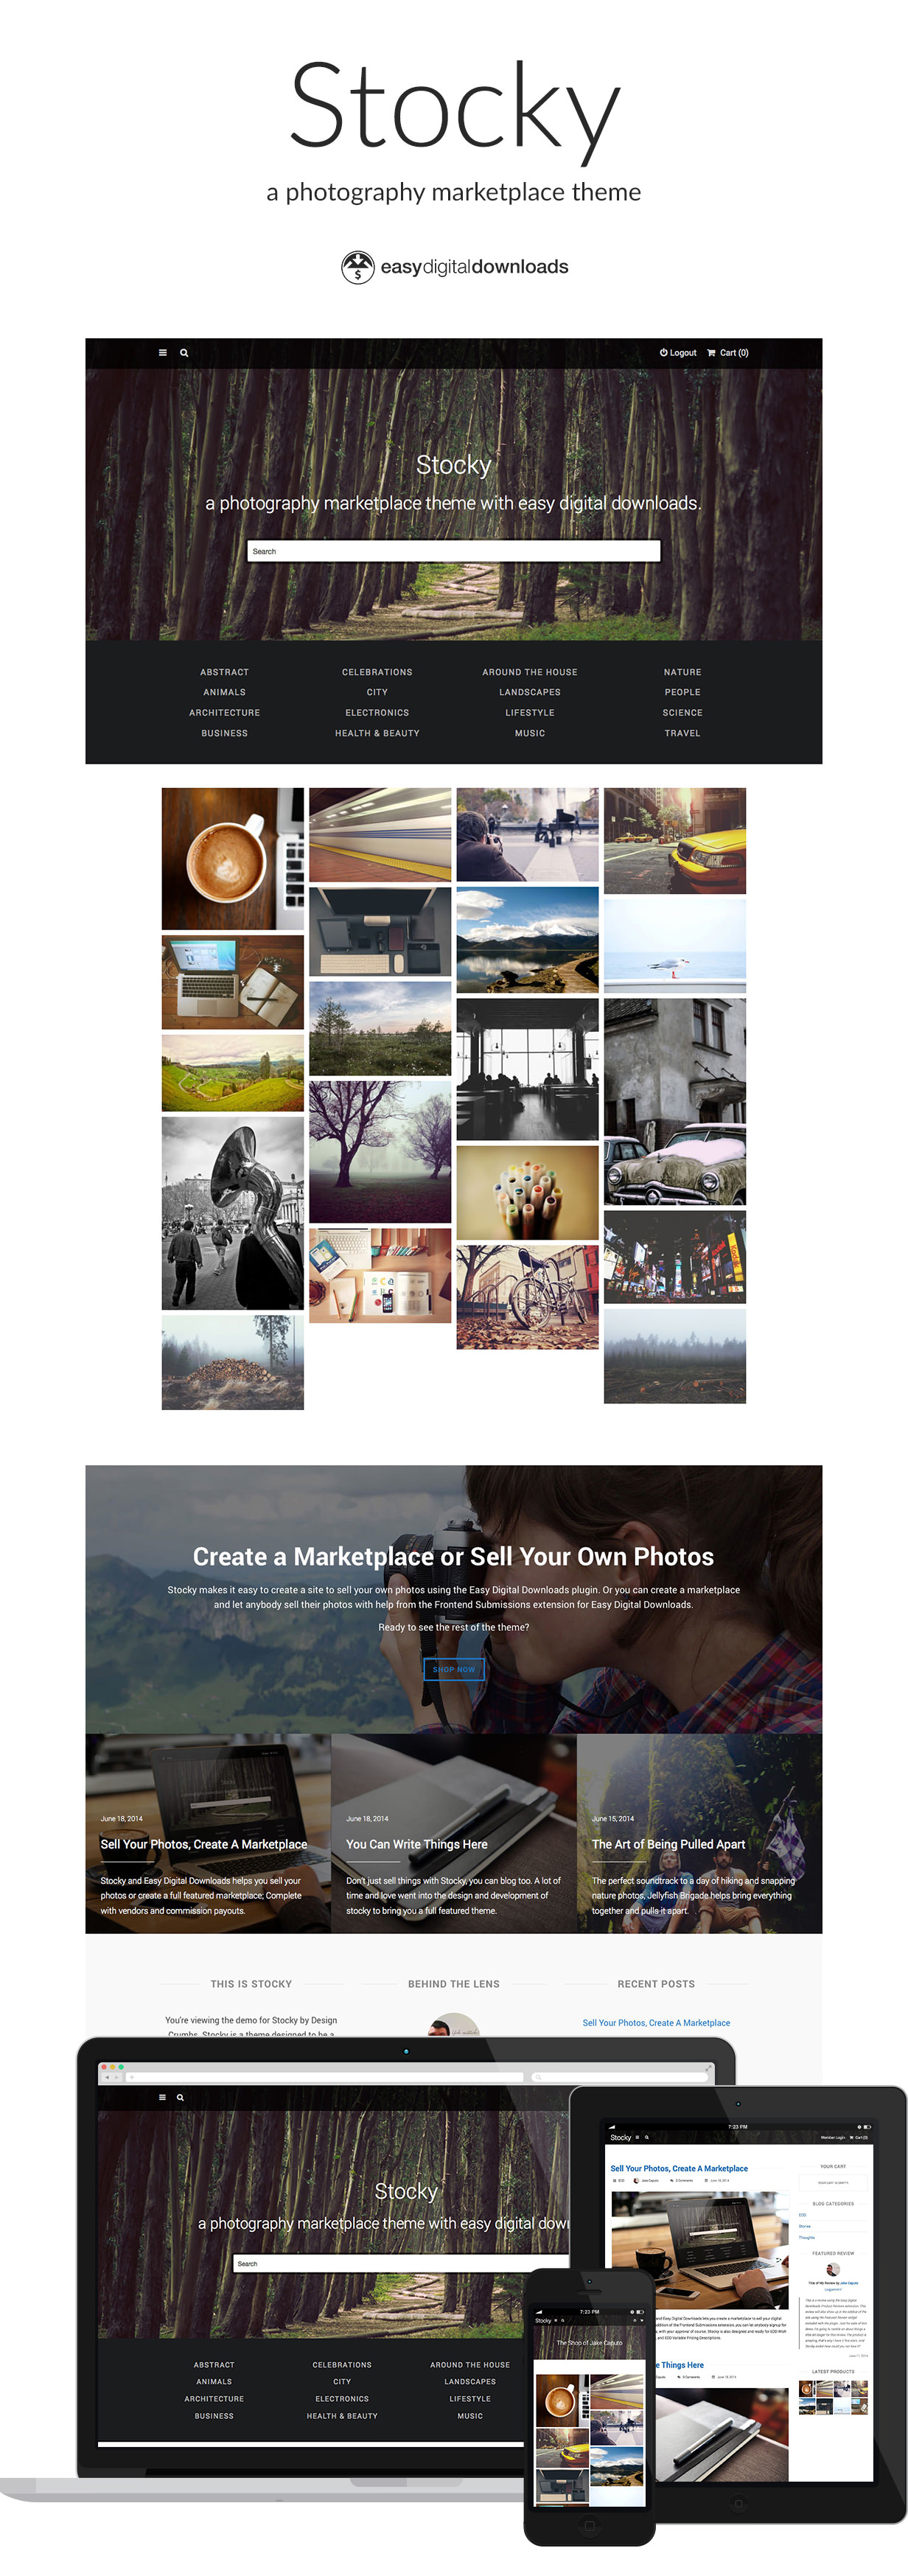 Stocky - Sell Photographs Online with WordPress and Easy Digital Download